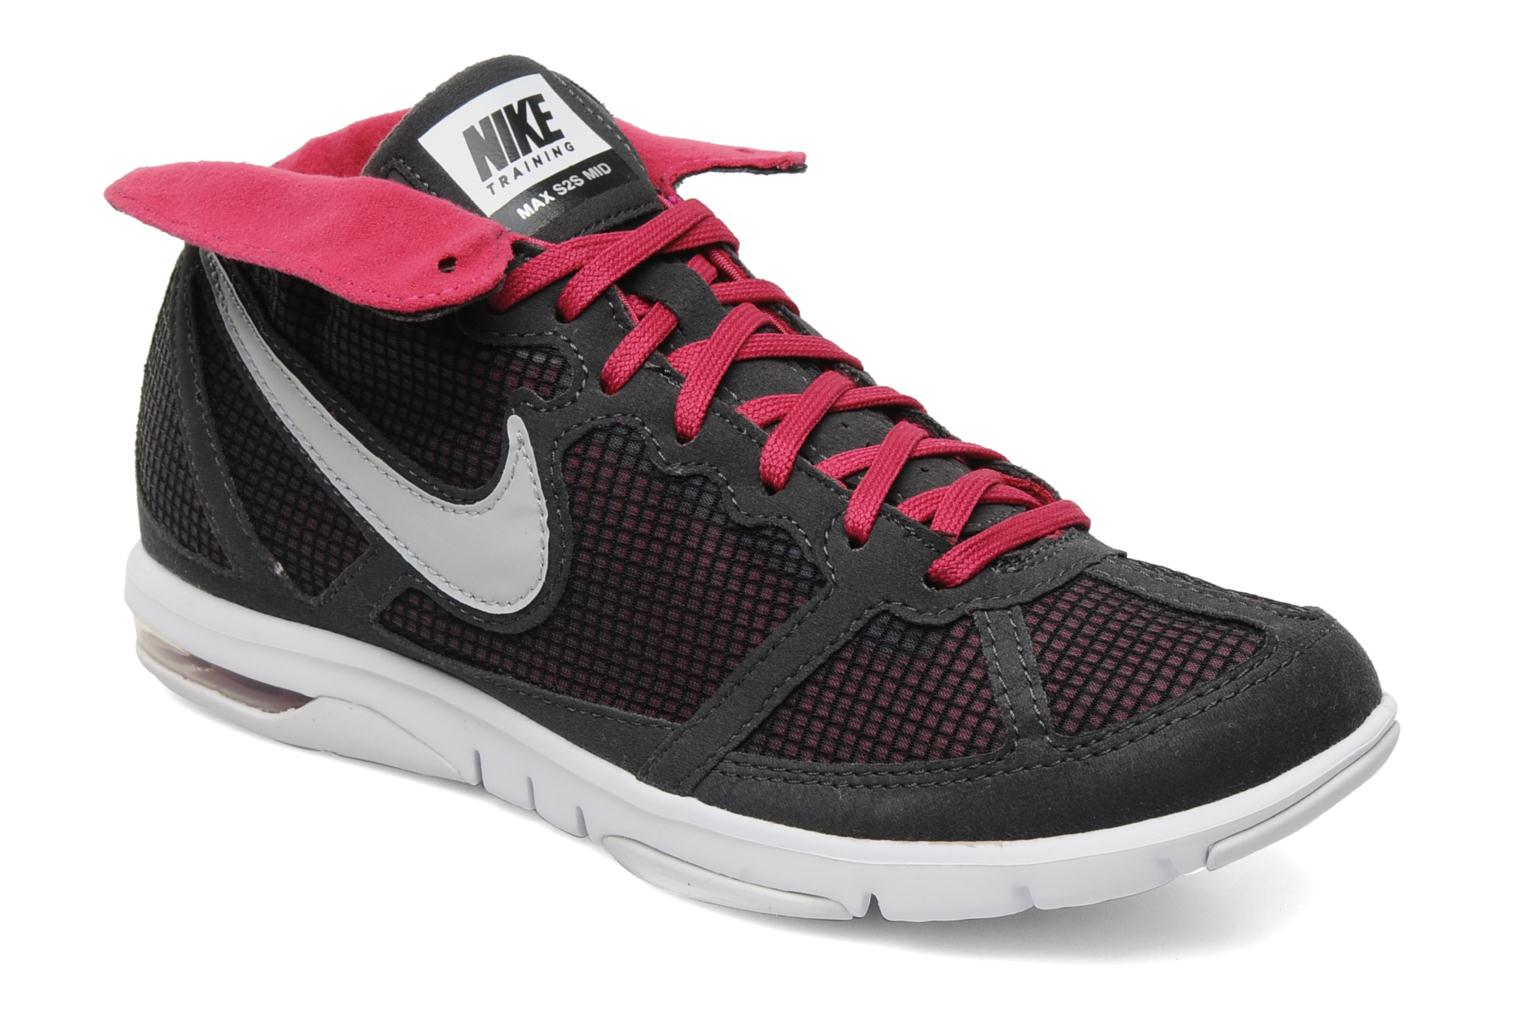 separation shoes 8faf3 a982b ... W Nike Air Max S2S Mid AnthraciteStrt Grey-Sprt Fchs ...